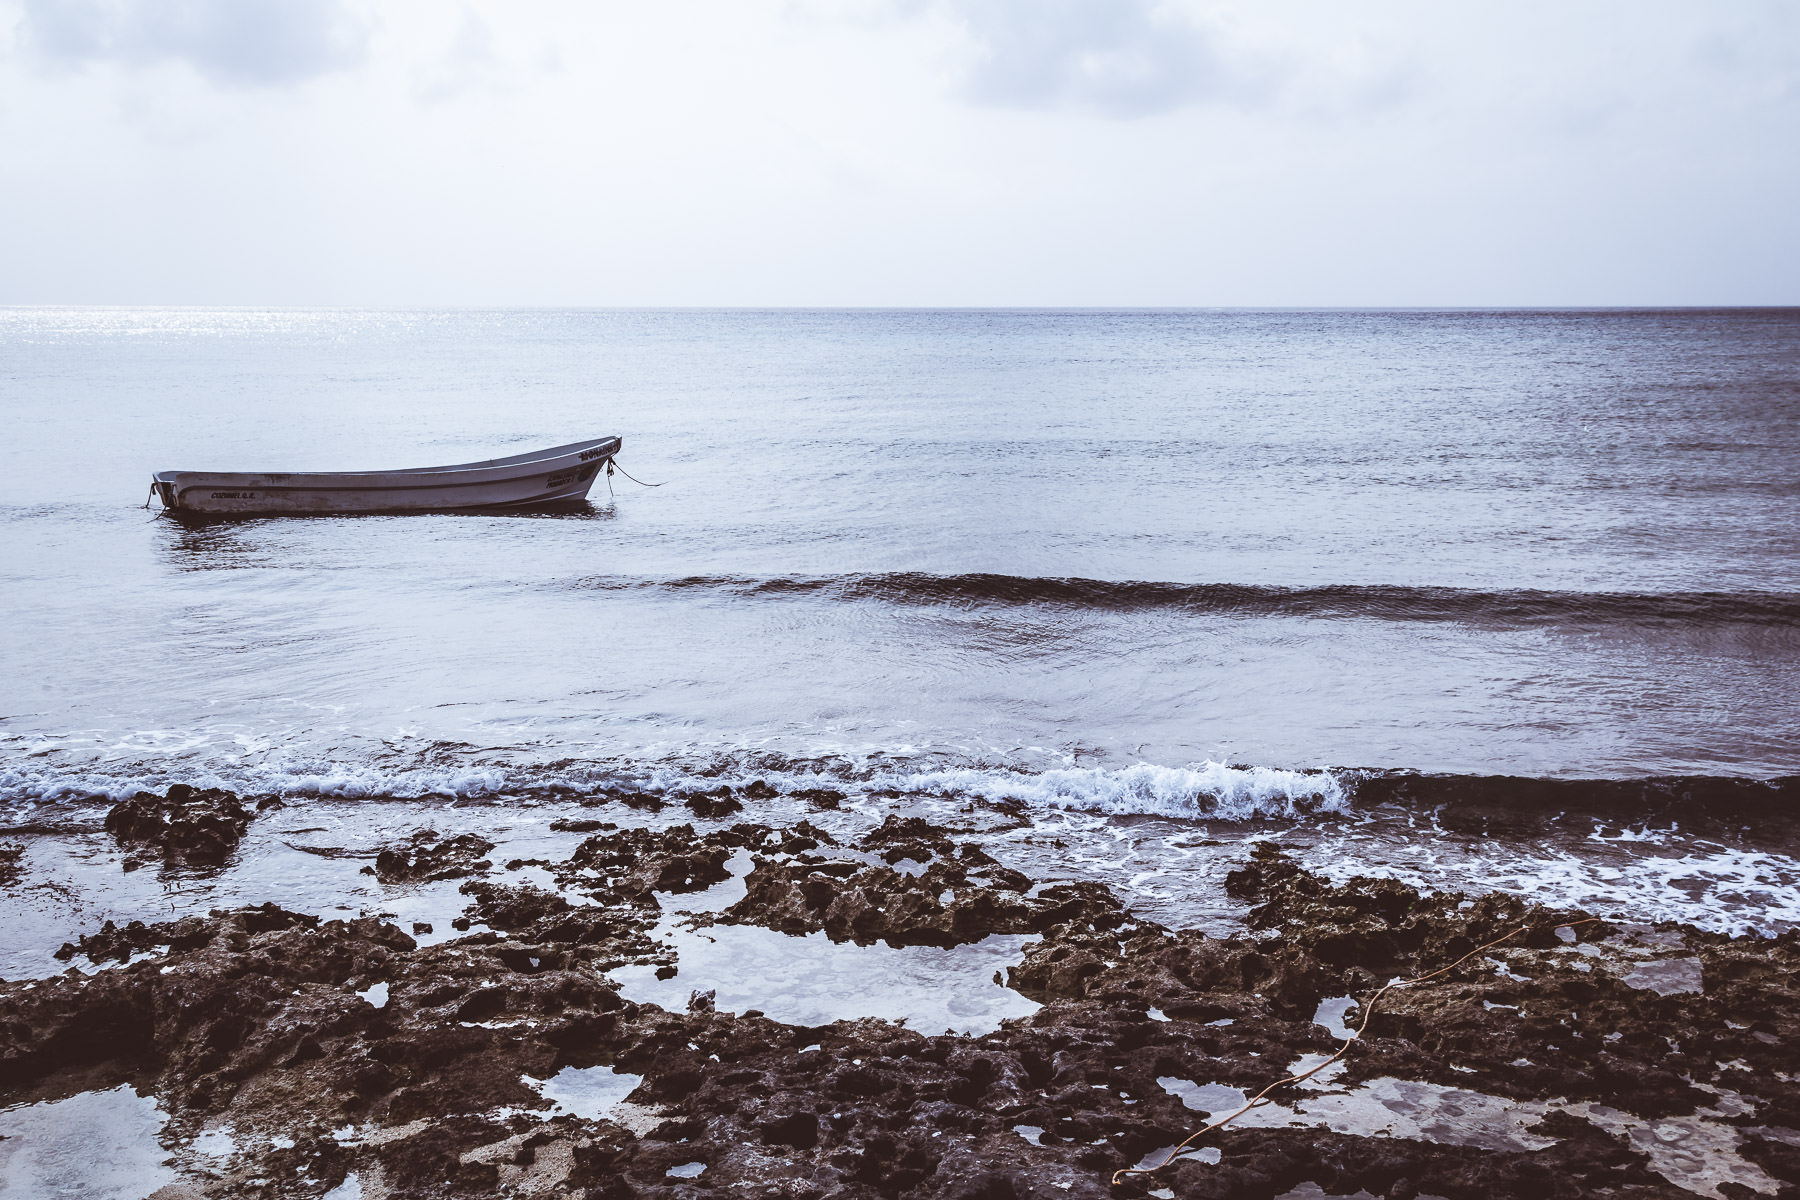 A small boat floats just offshore of a rocky beach at Cozumel, Mexico.